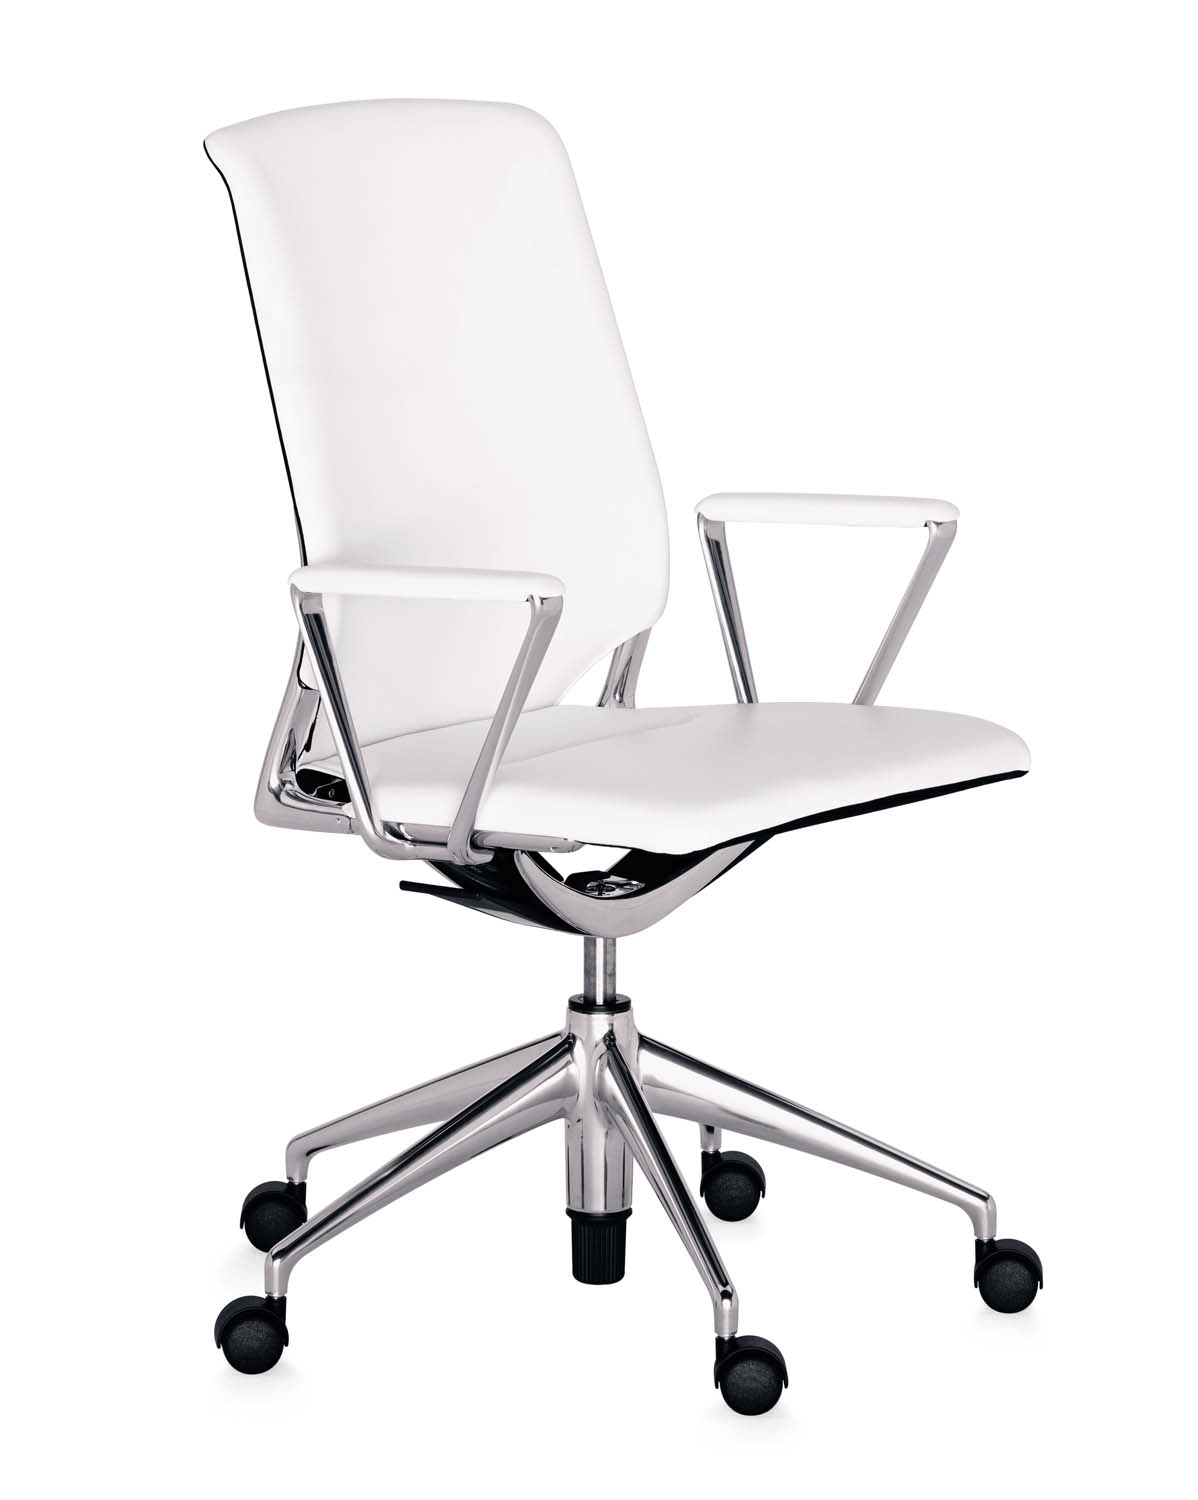 office chair qvc design wallpaper seating benchmarque